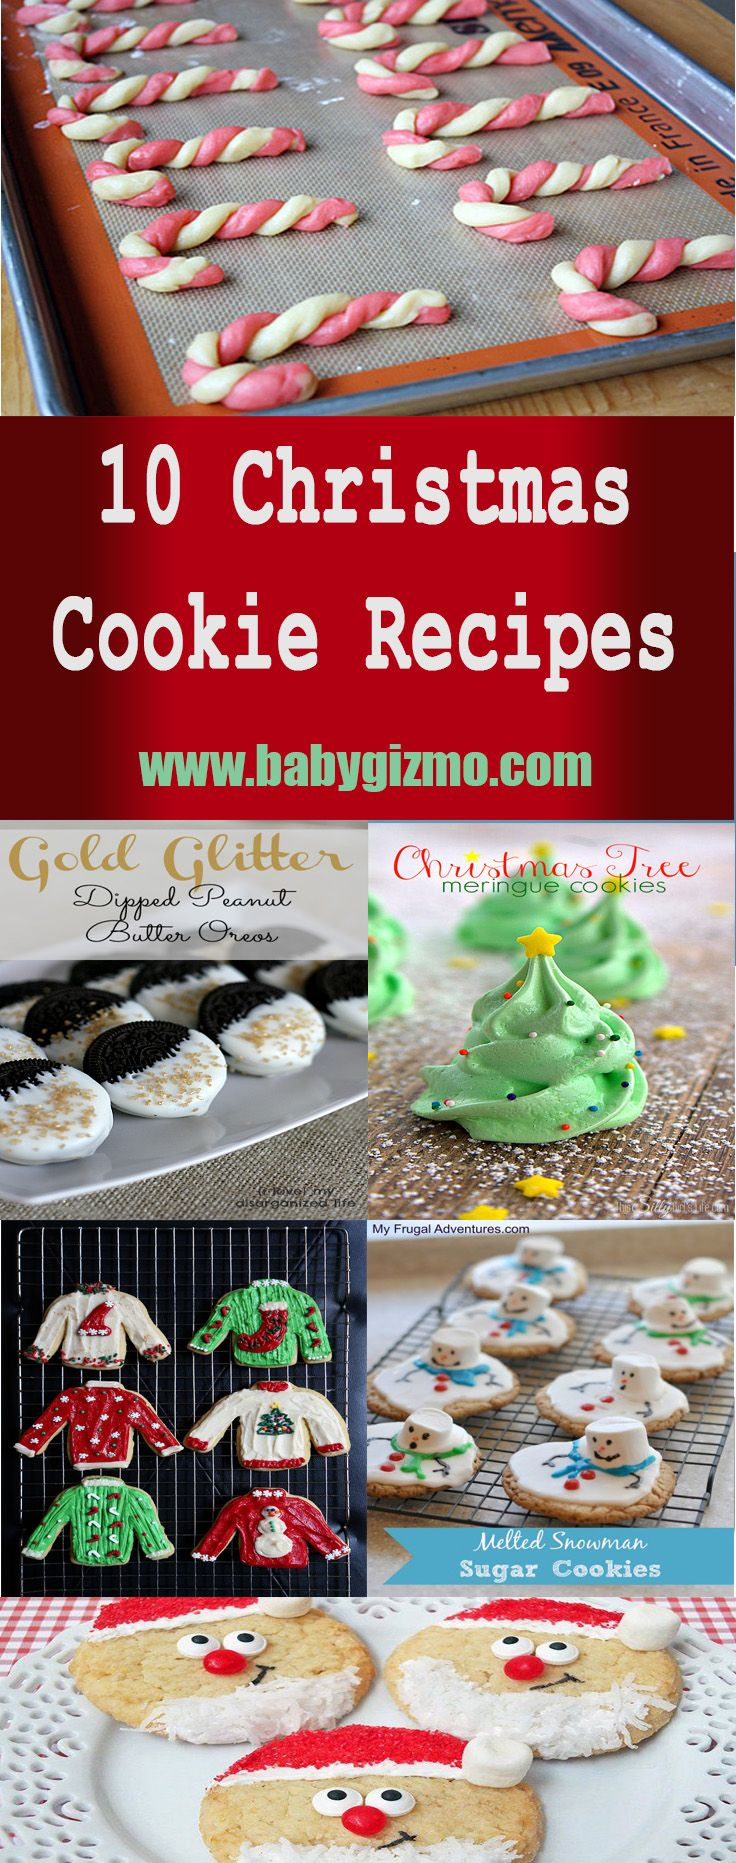 10 of the cutest Christmas cookies in town! The ugly sweater cookies are genius! #Christmas #Cookies